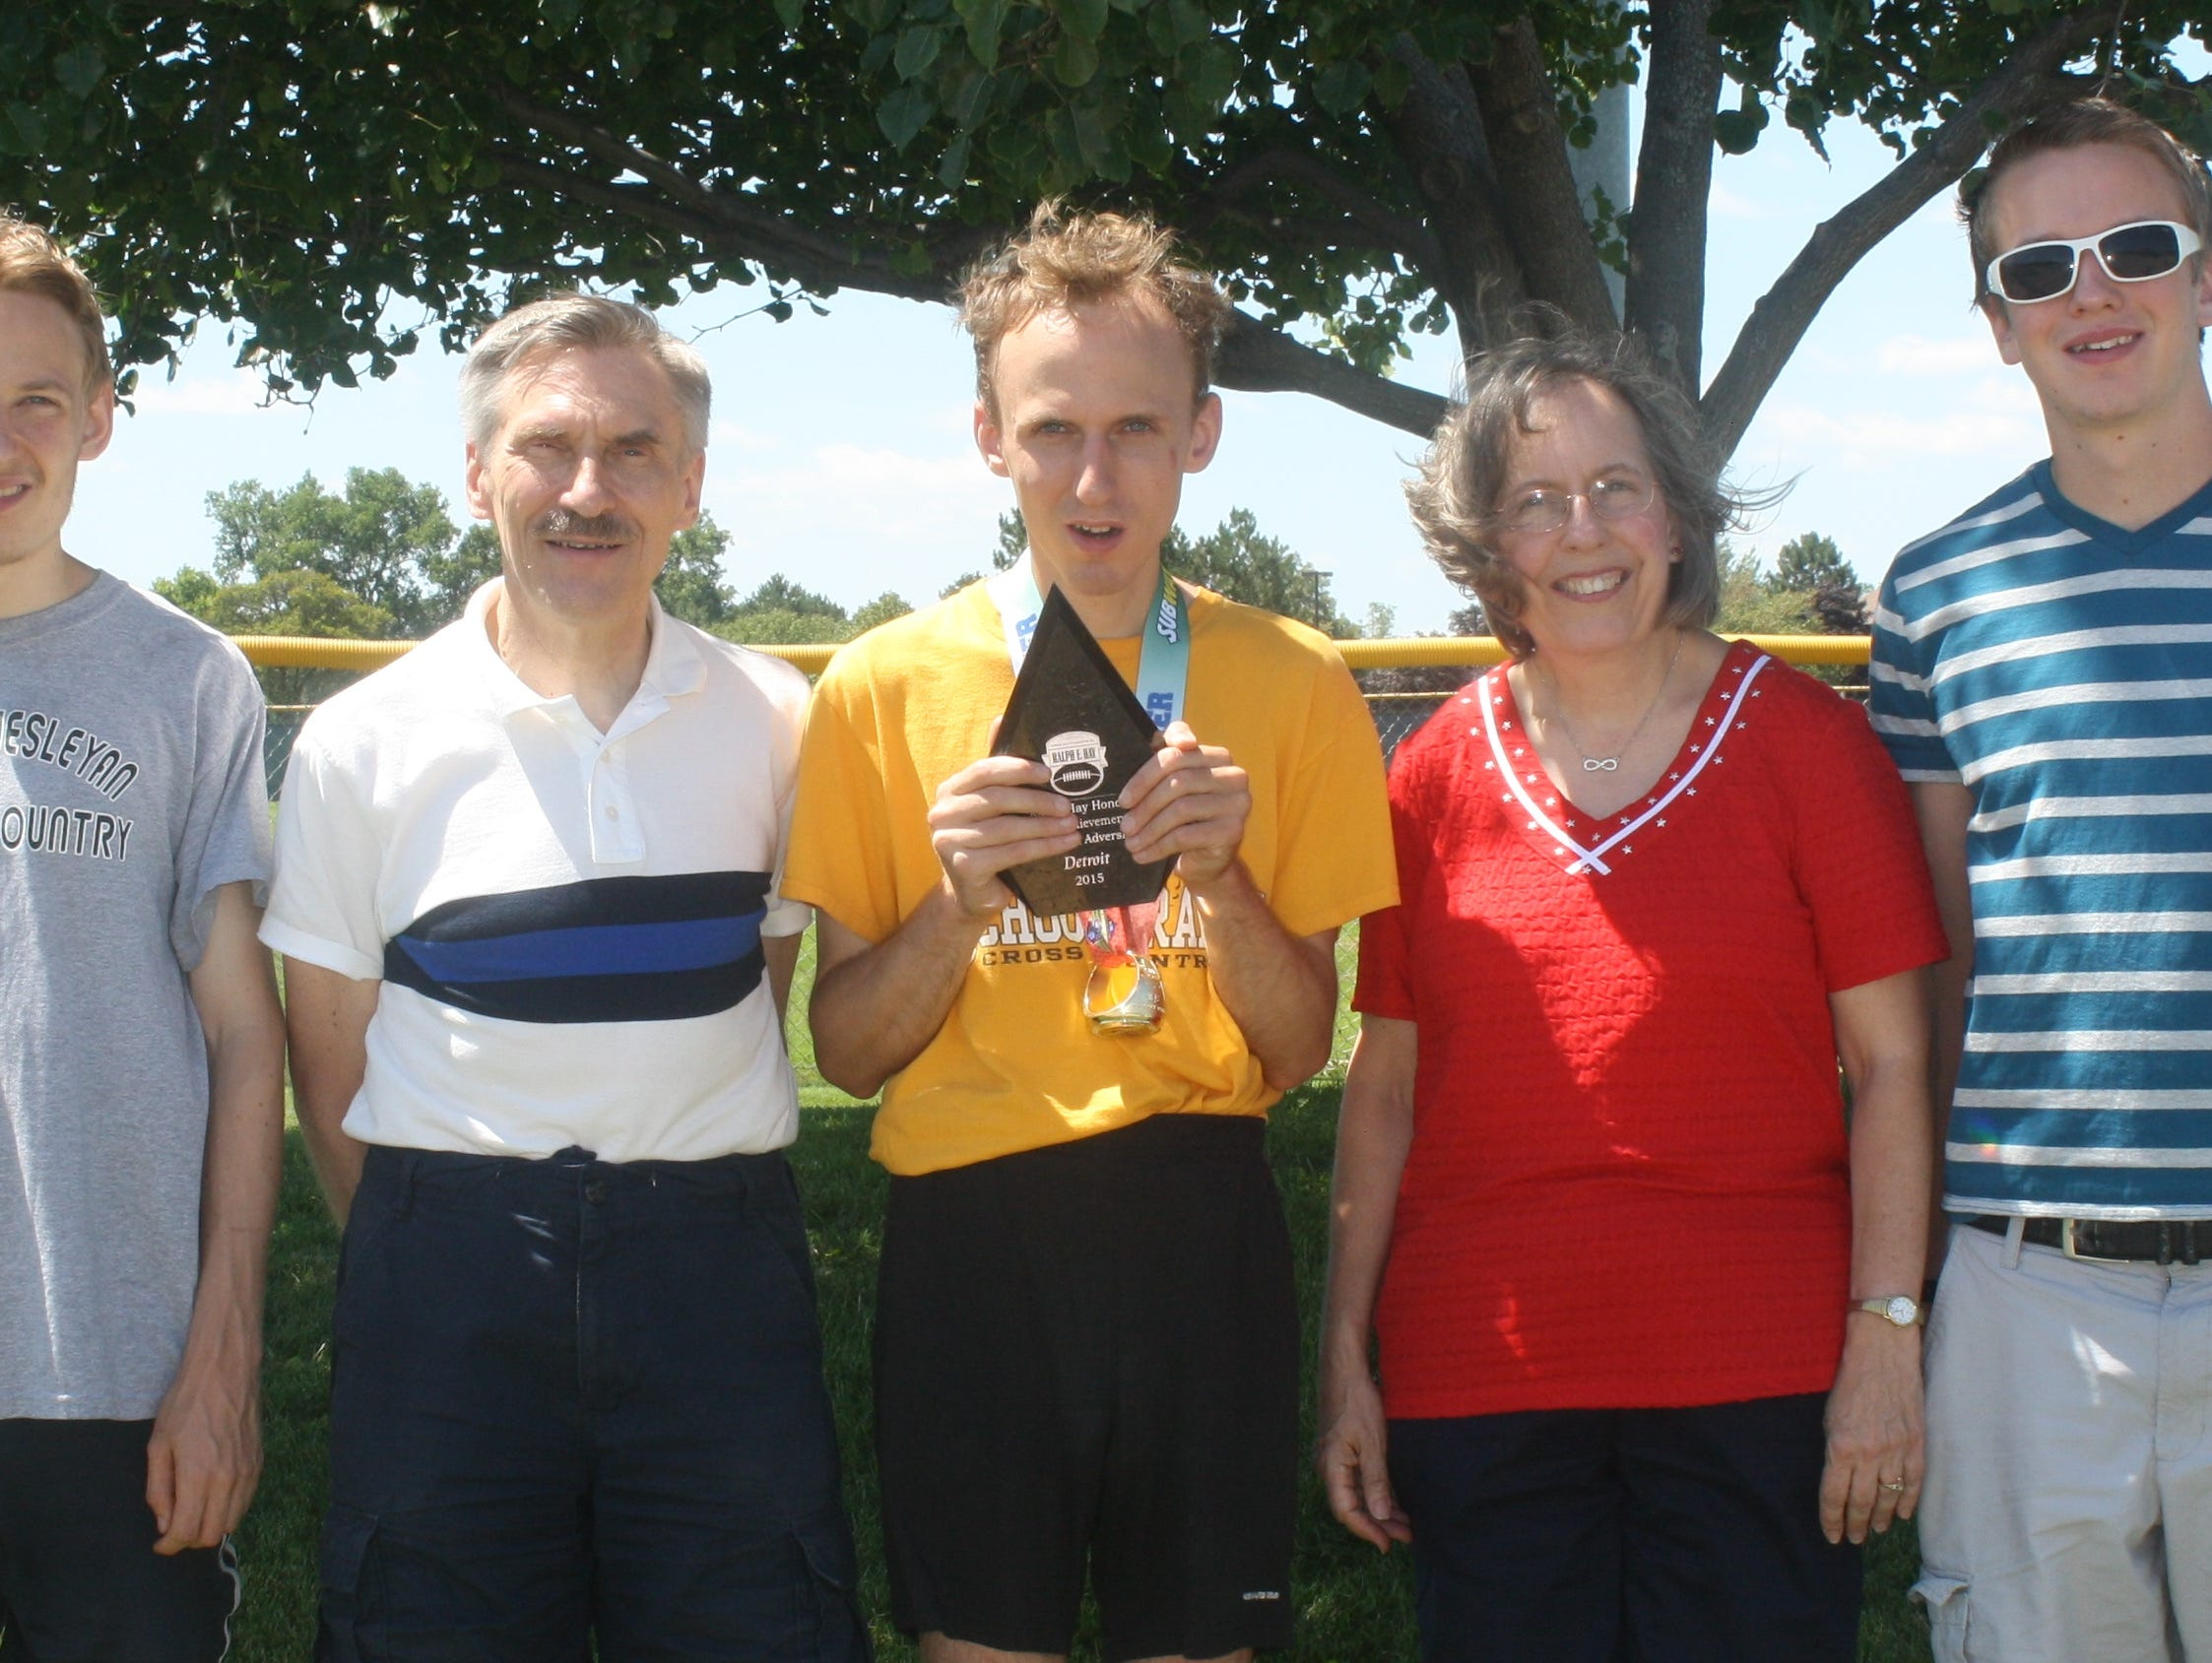 Scott Howse (middle) is pictured with his parents, Ken and Connie, and brothers Shawn and Franklin.